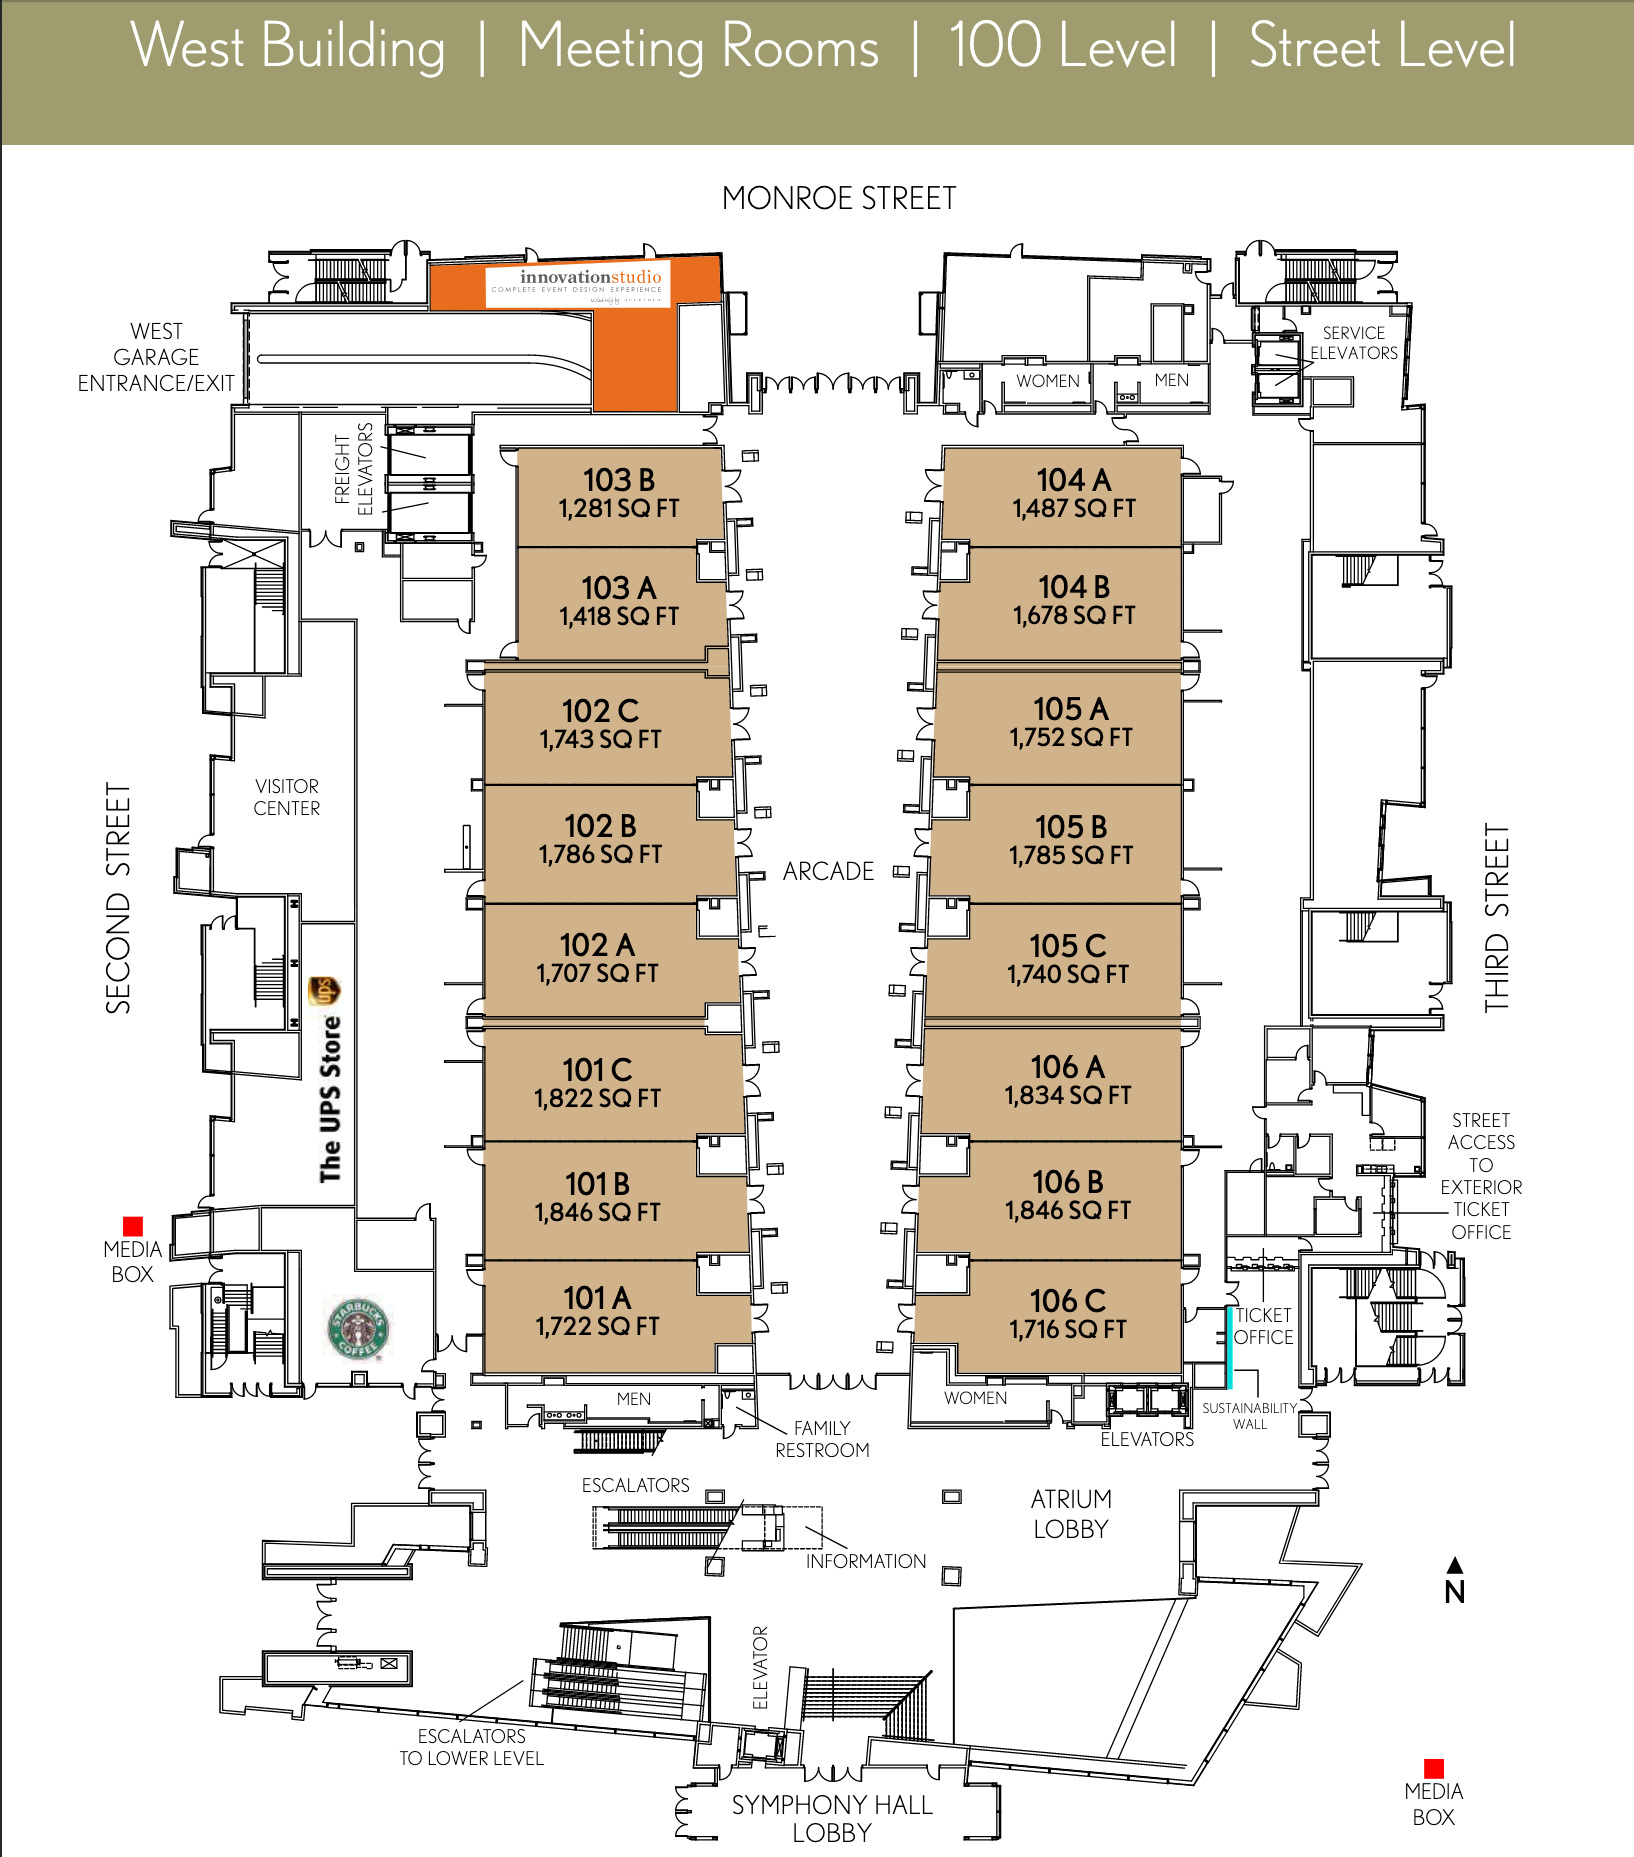 - Location AM meeting Room 102A